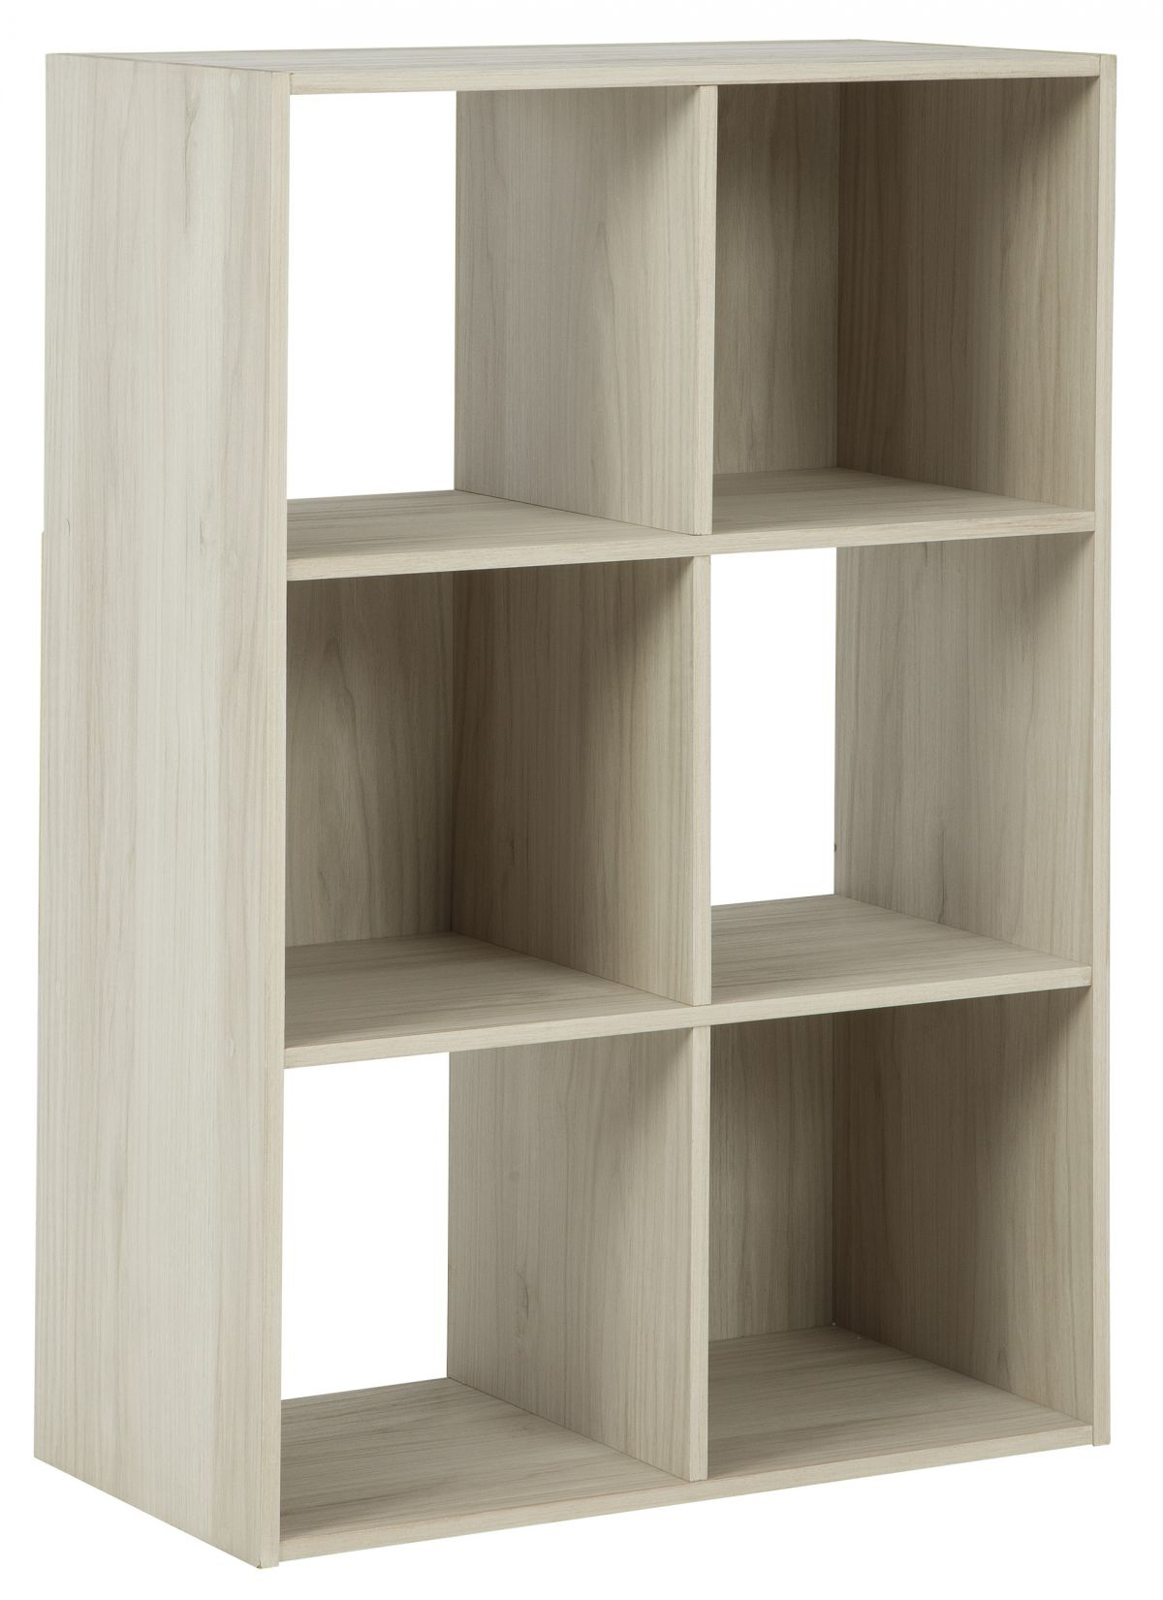 Picture of Socalle Cube Organizer